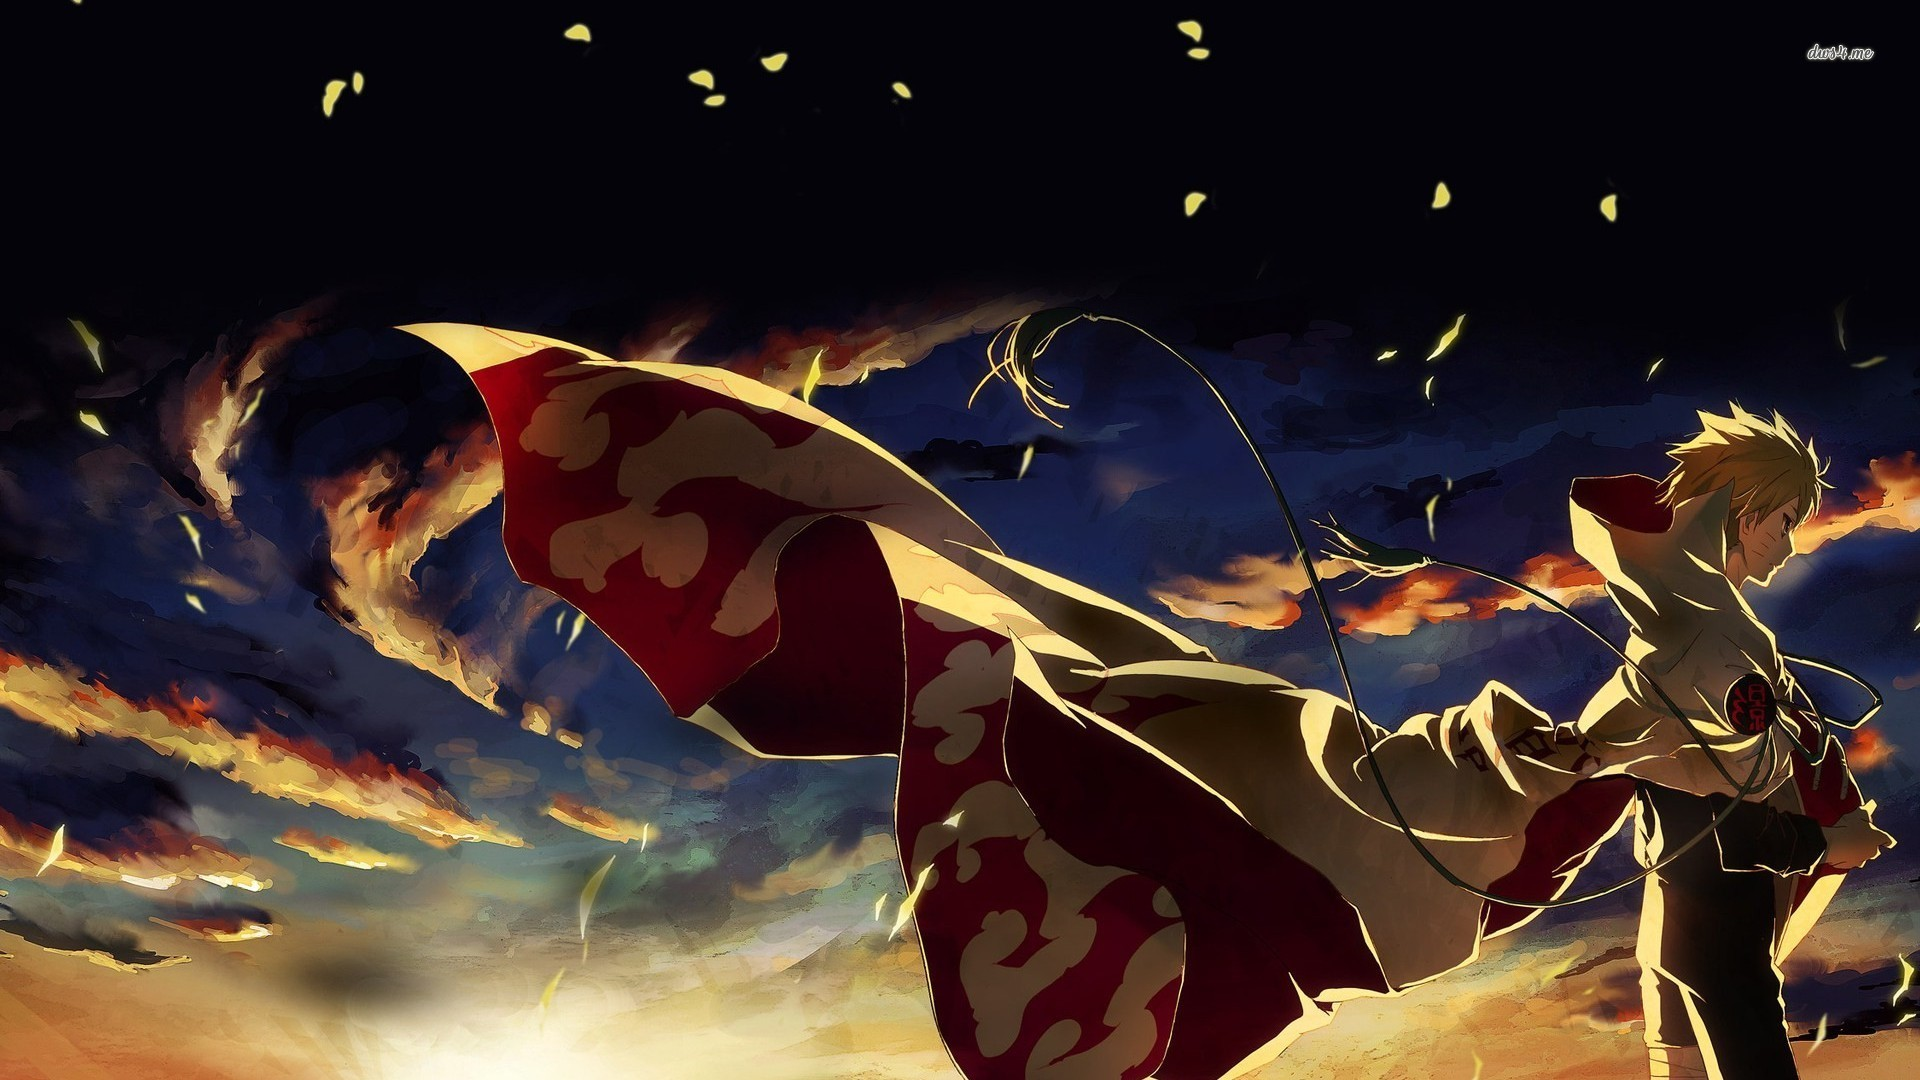 979579 most popular cool naruto wallpapers hd 1920x1080 macbook